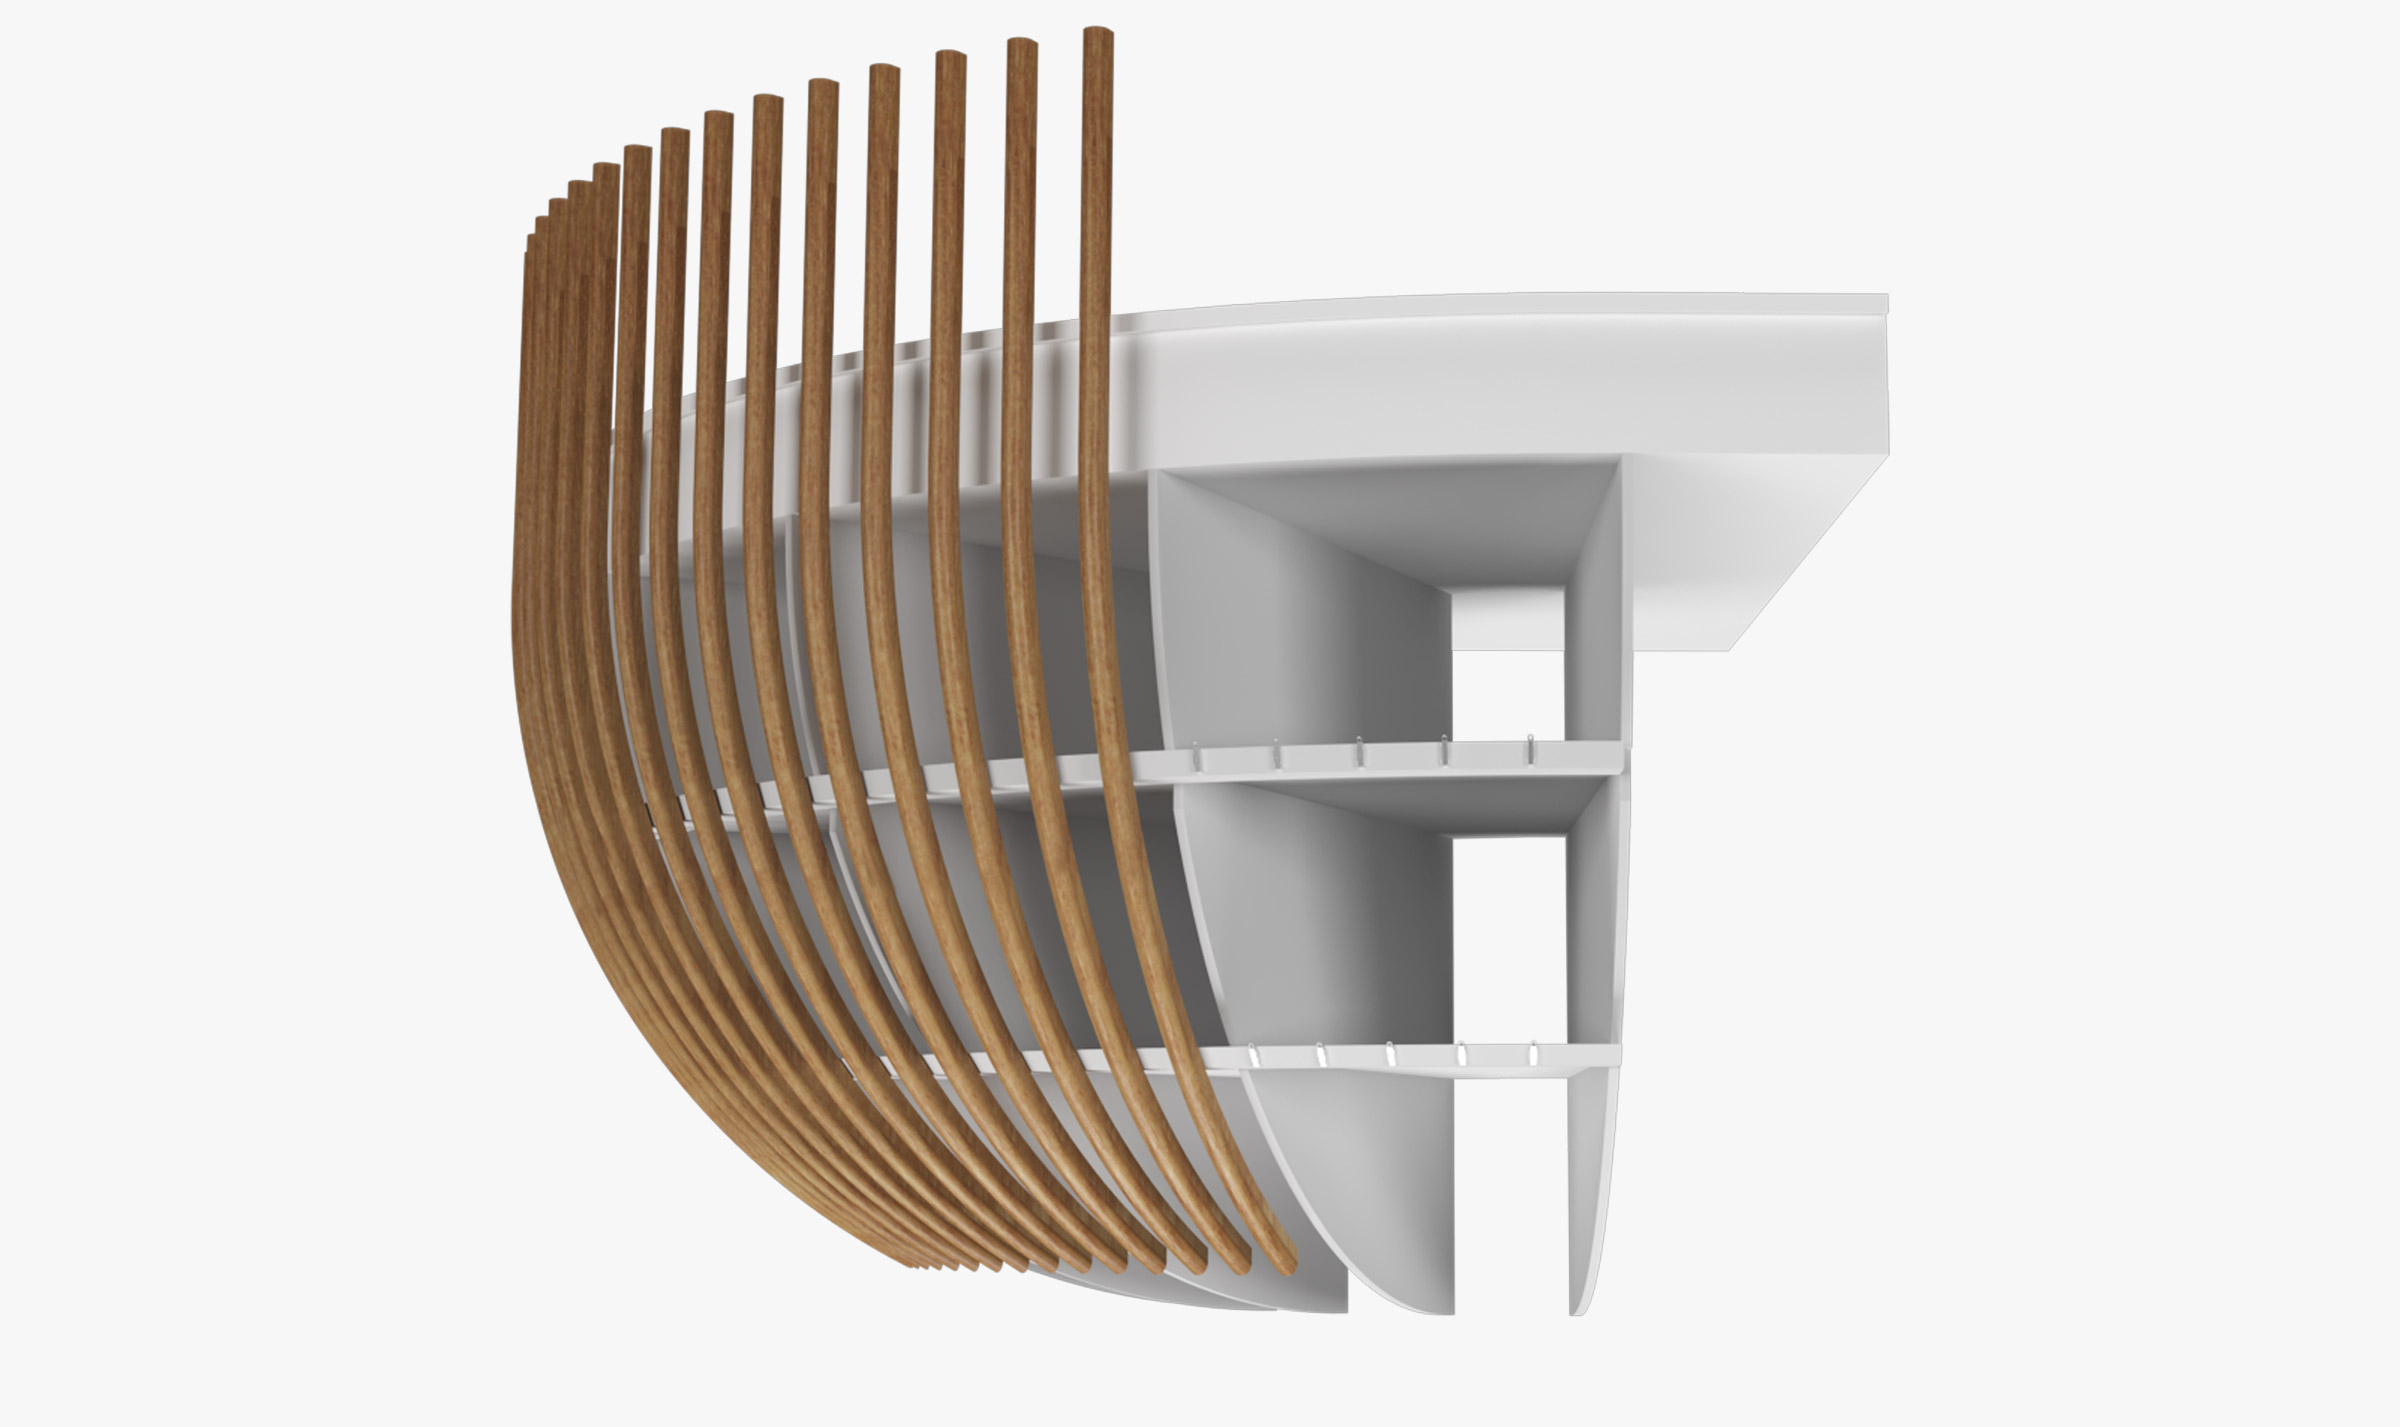 Sculptform Curved Timber how it works